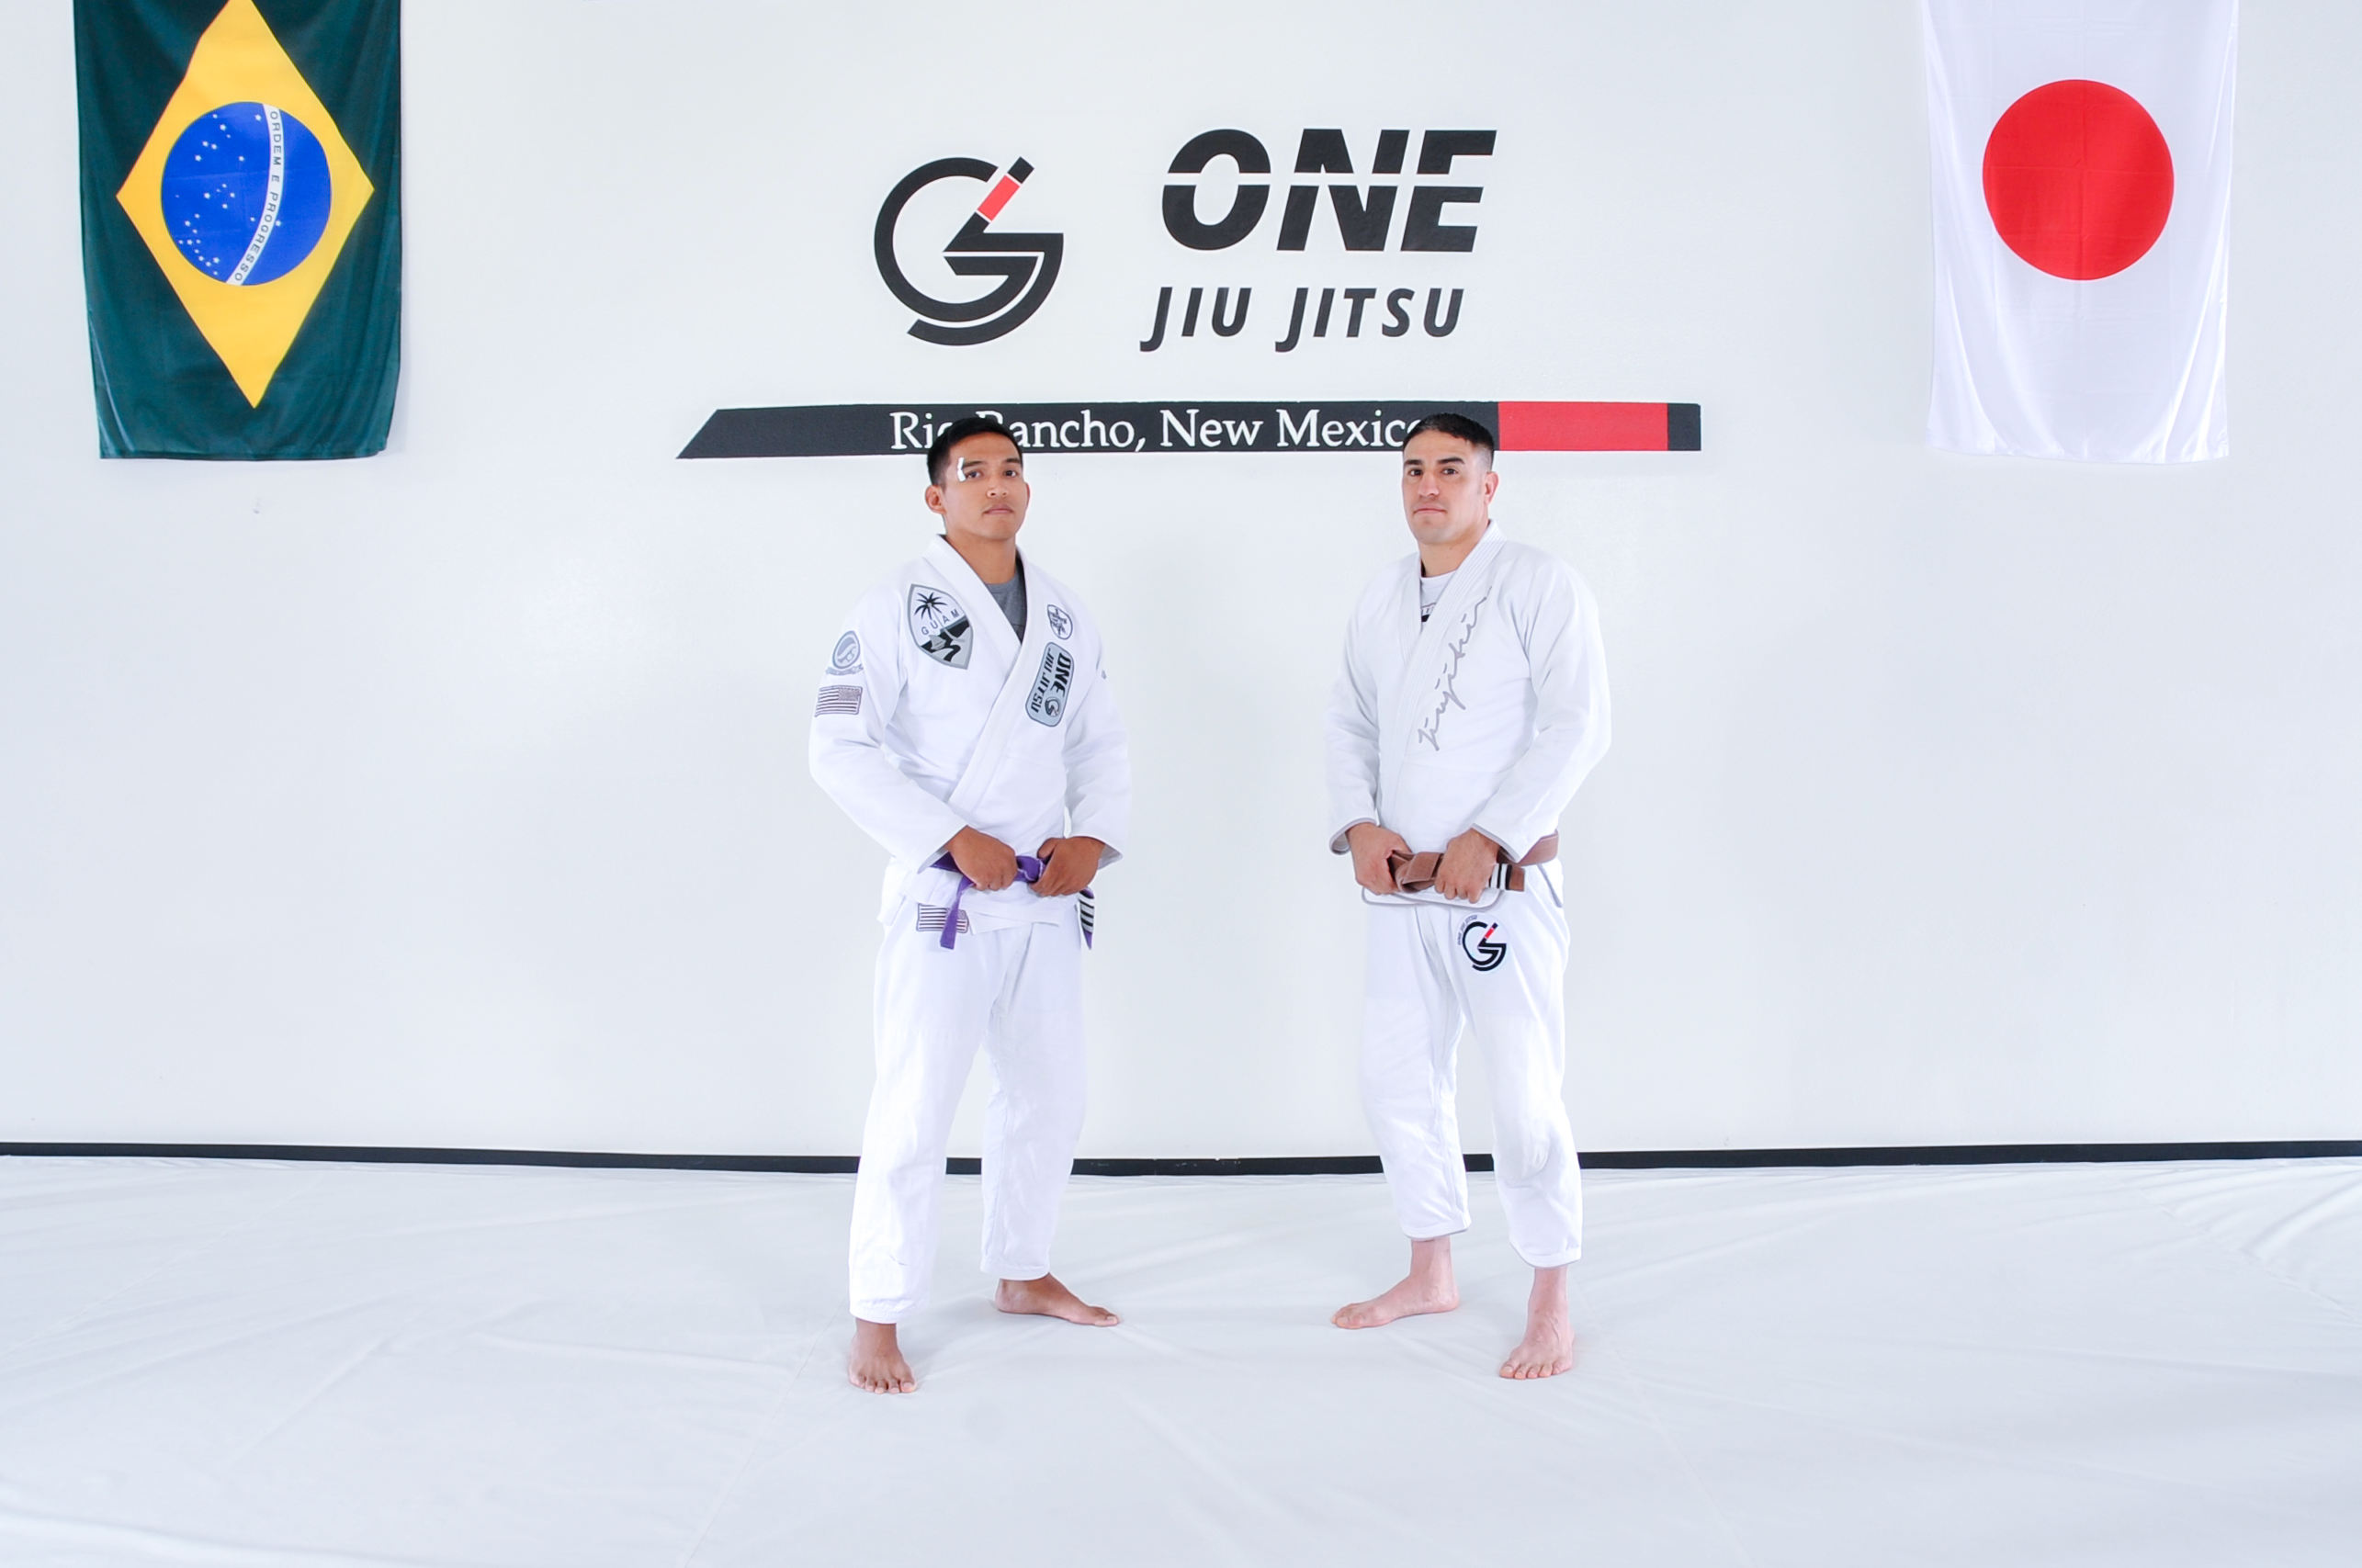 One Jiu Jitsu New Mexico About